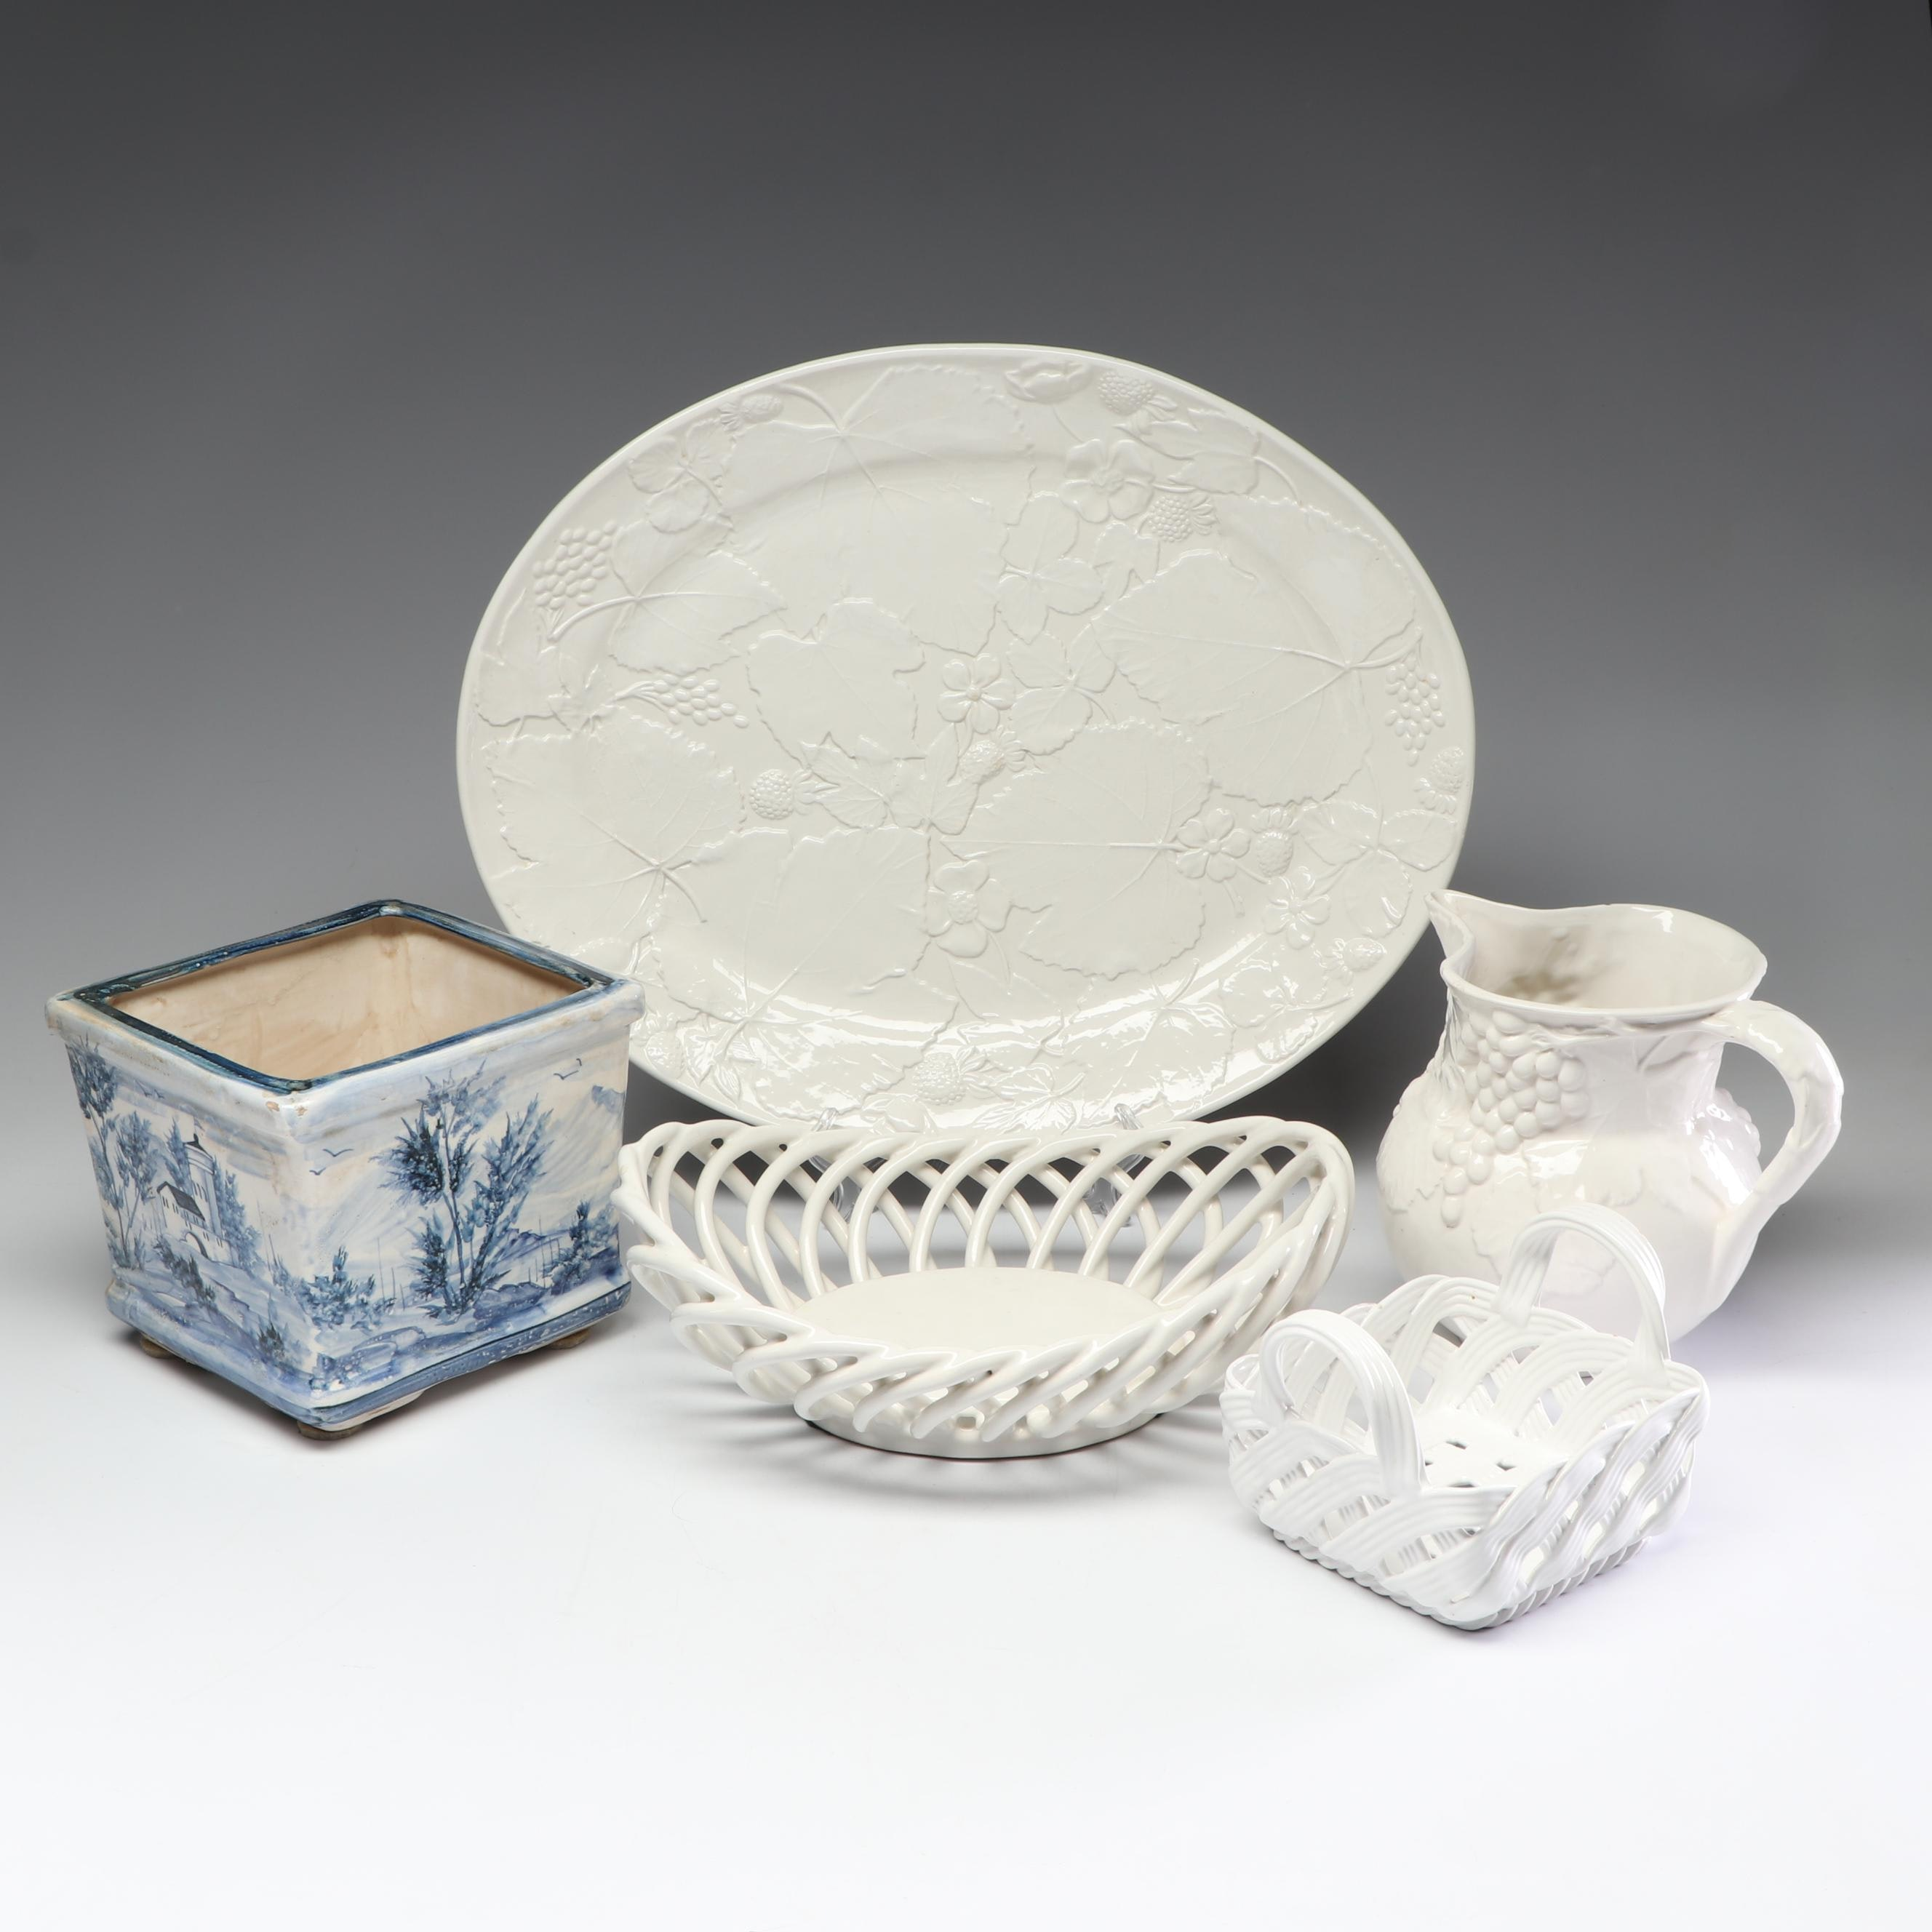 Collection of Ceramic Home Accents